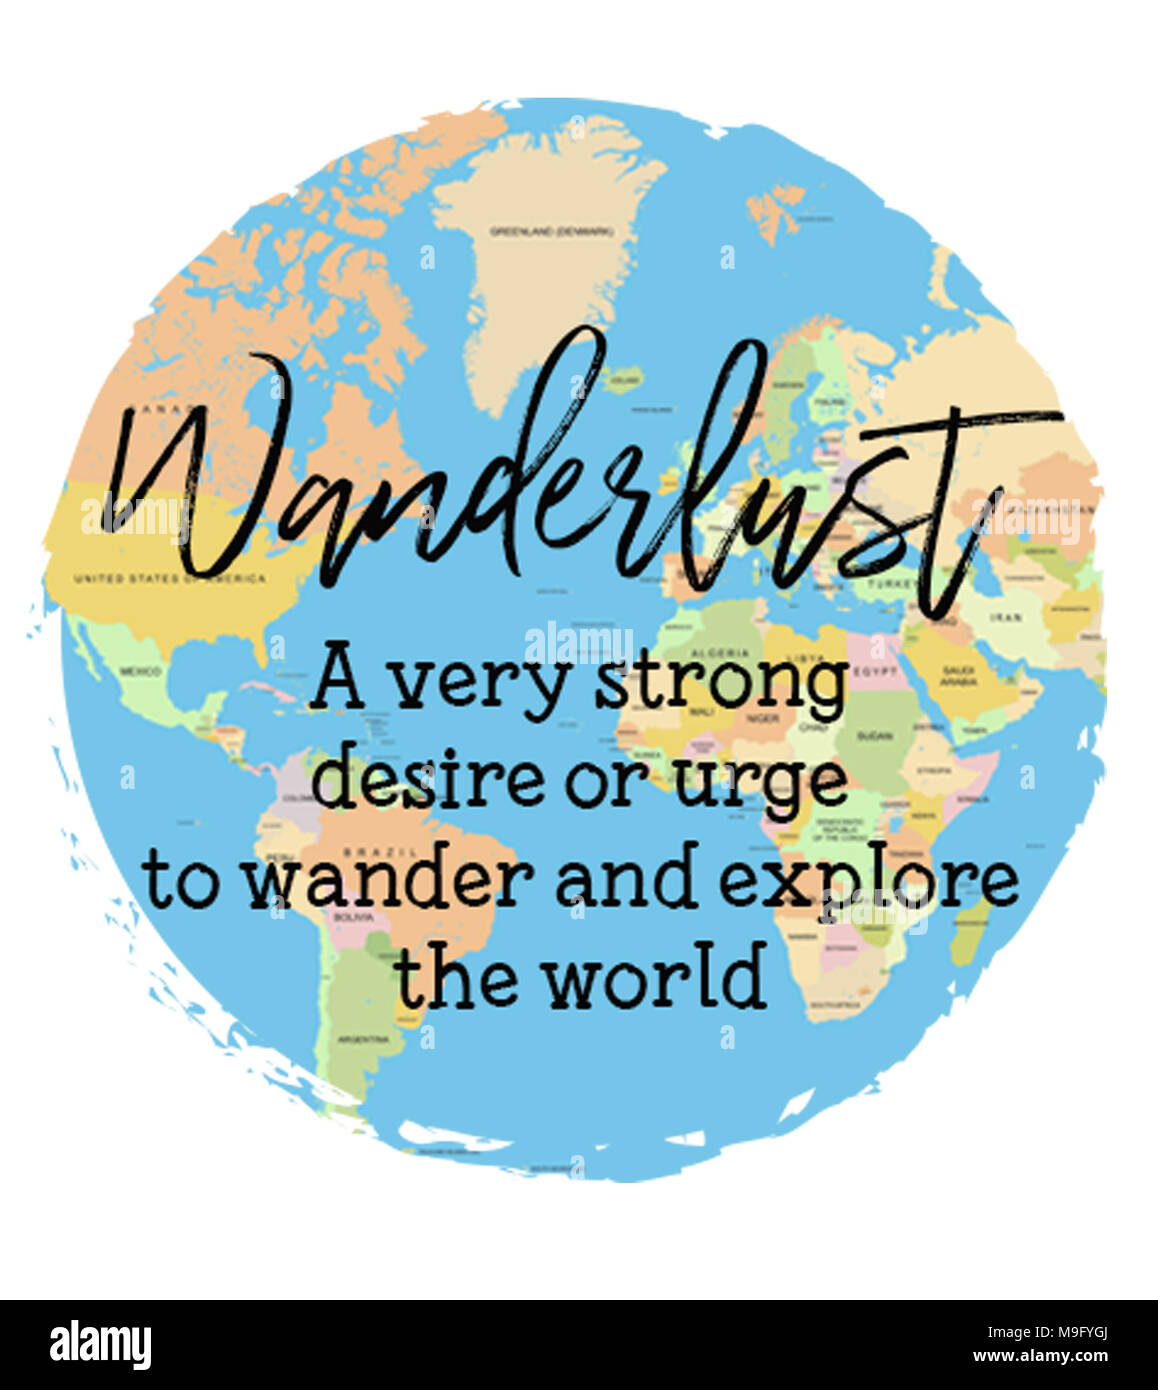 WANDERLUST A very strong desire to urge to wander and explore the world - Stock Image